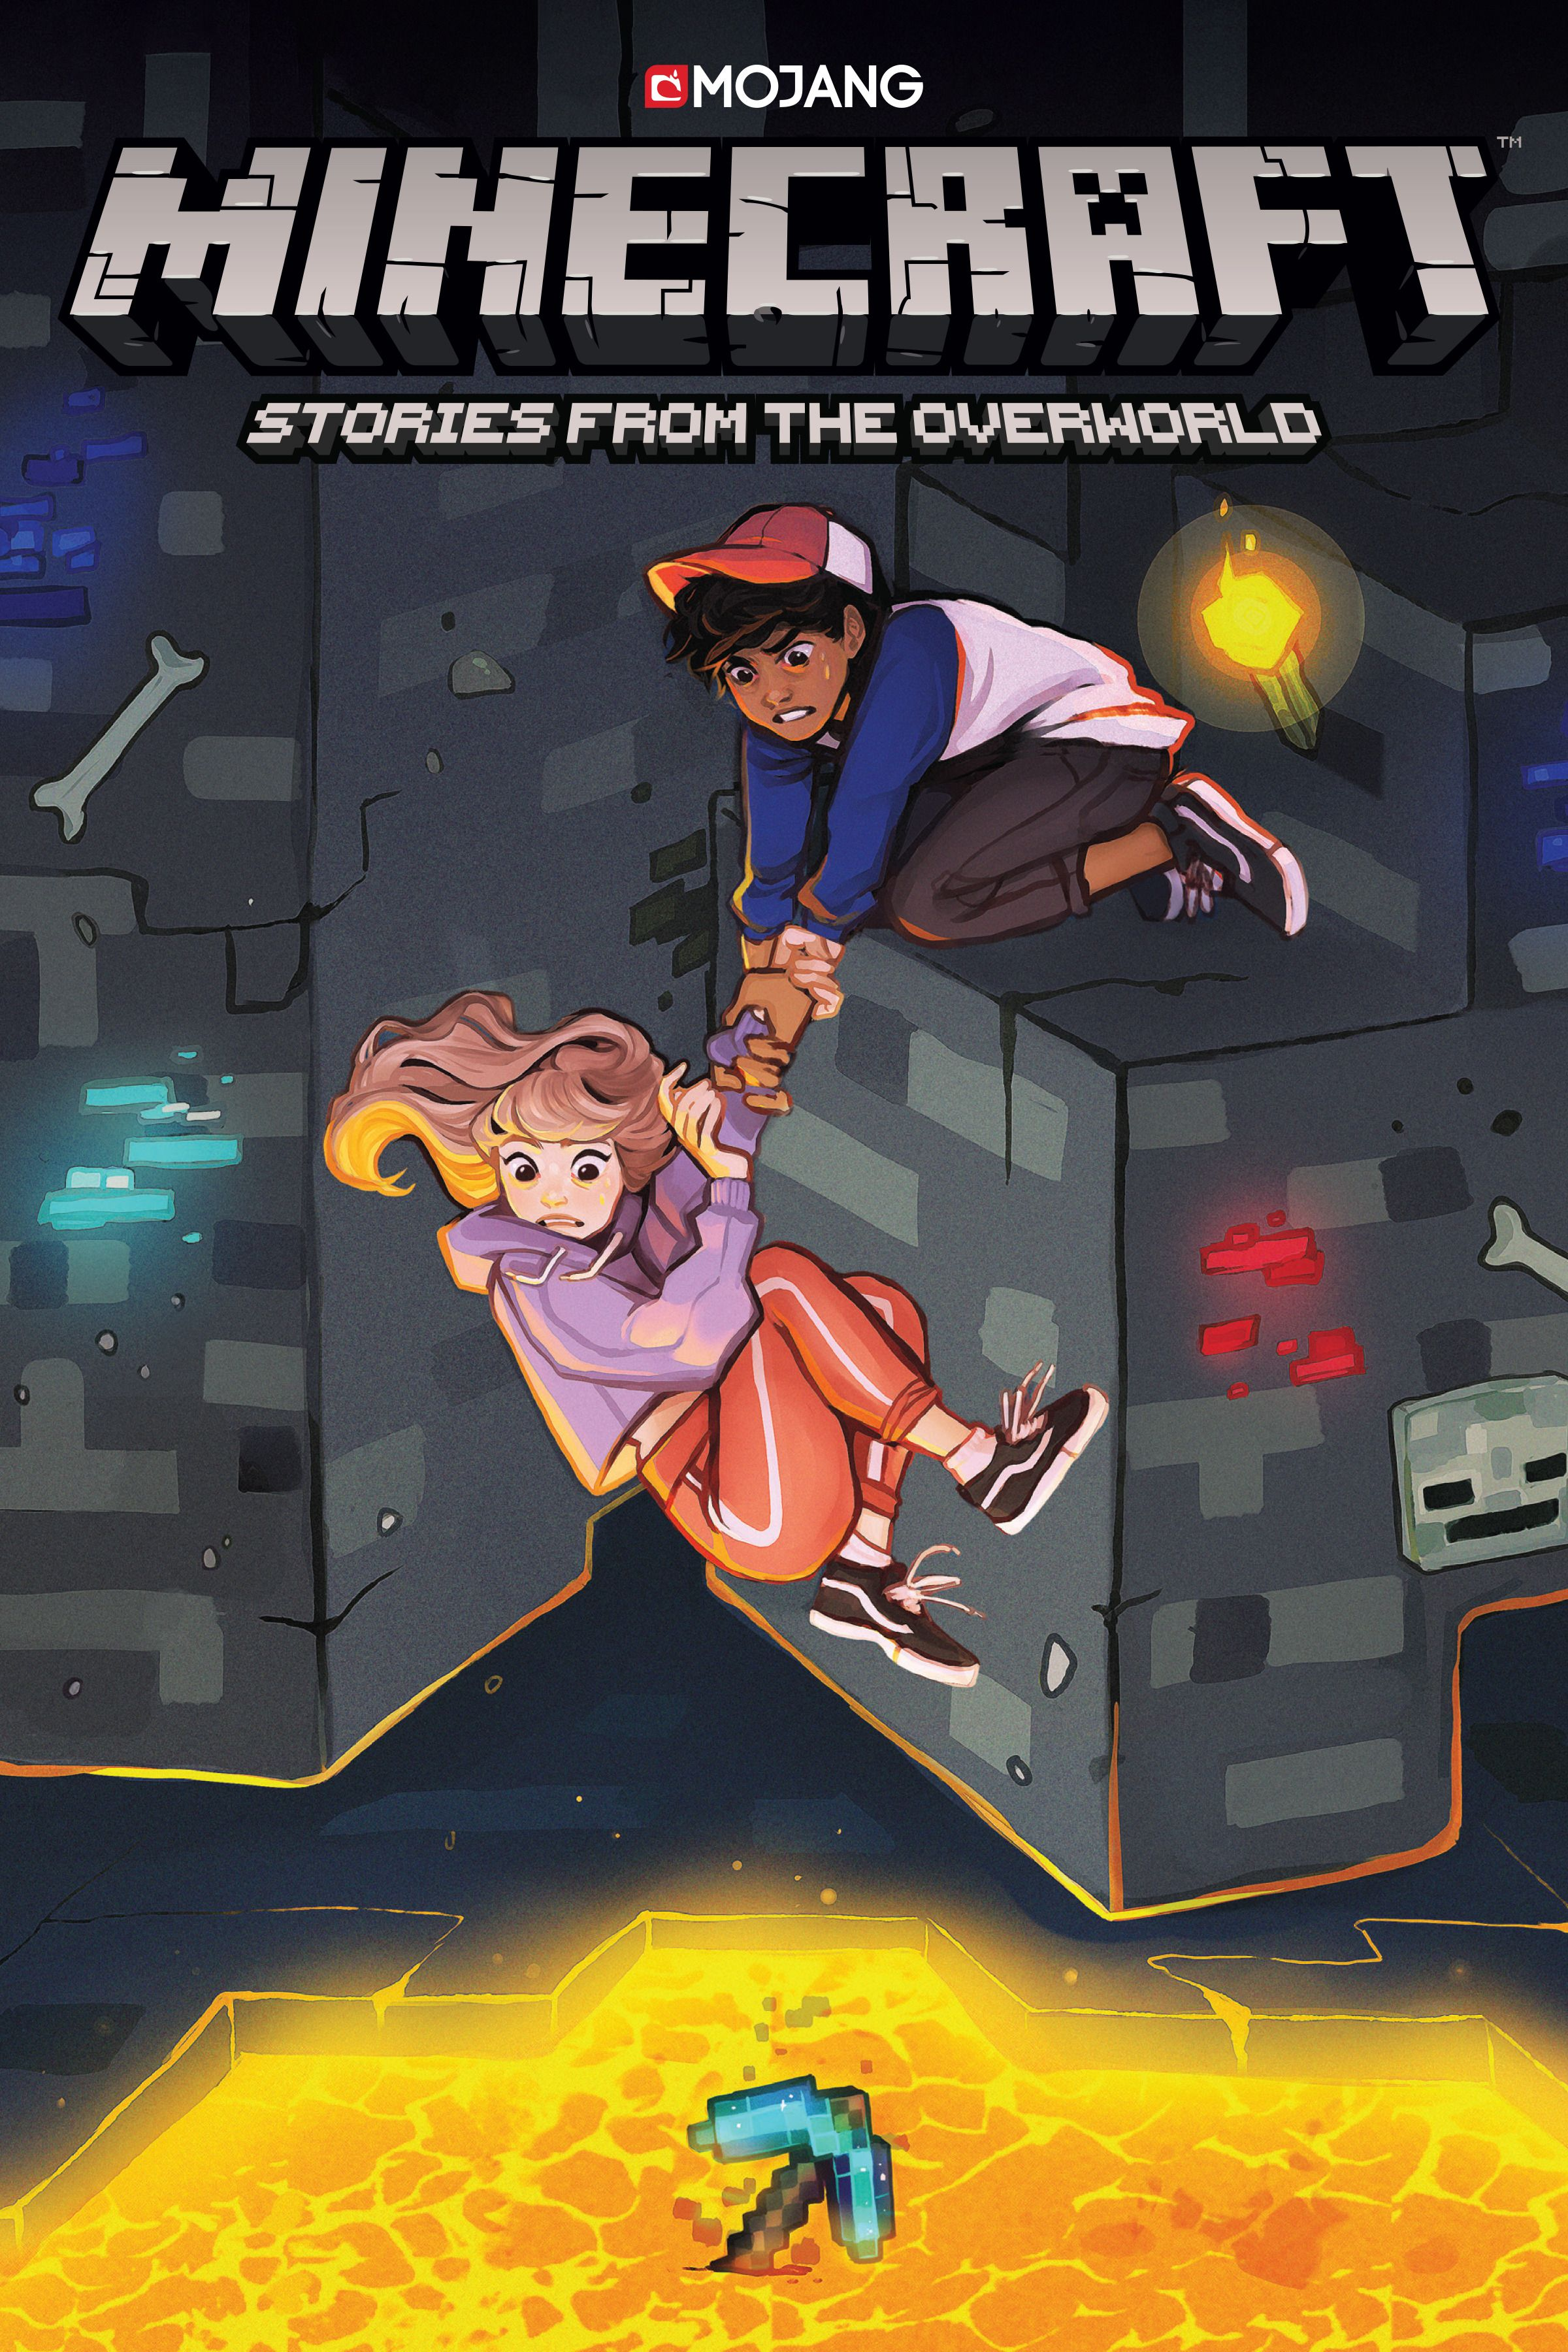 minecraft stories from the overworld cover reveal